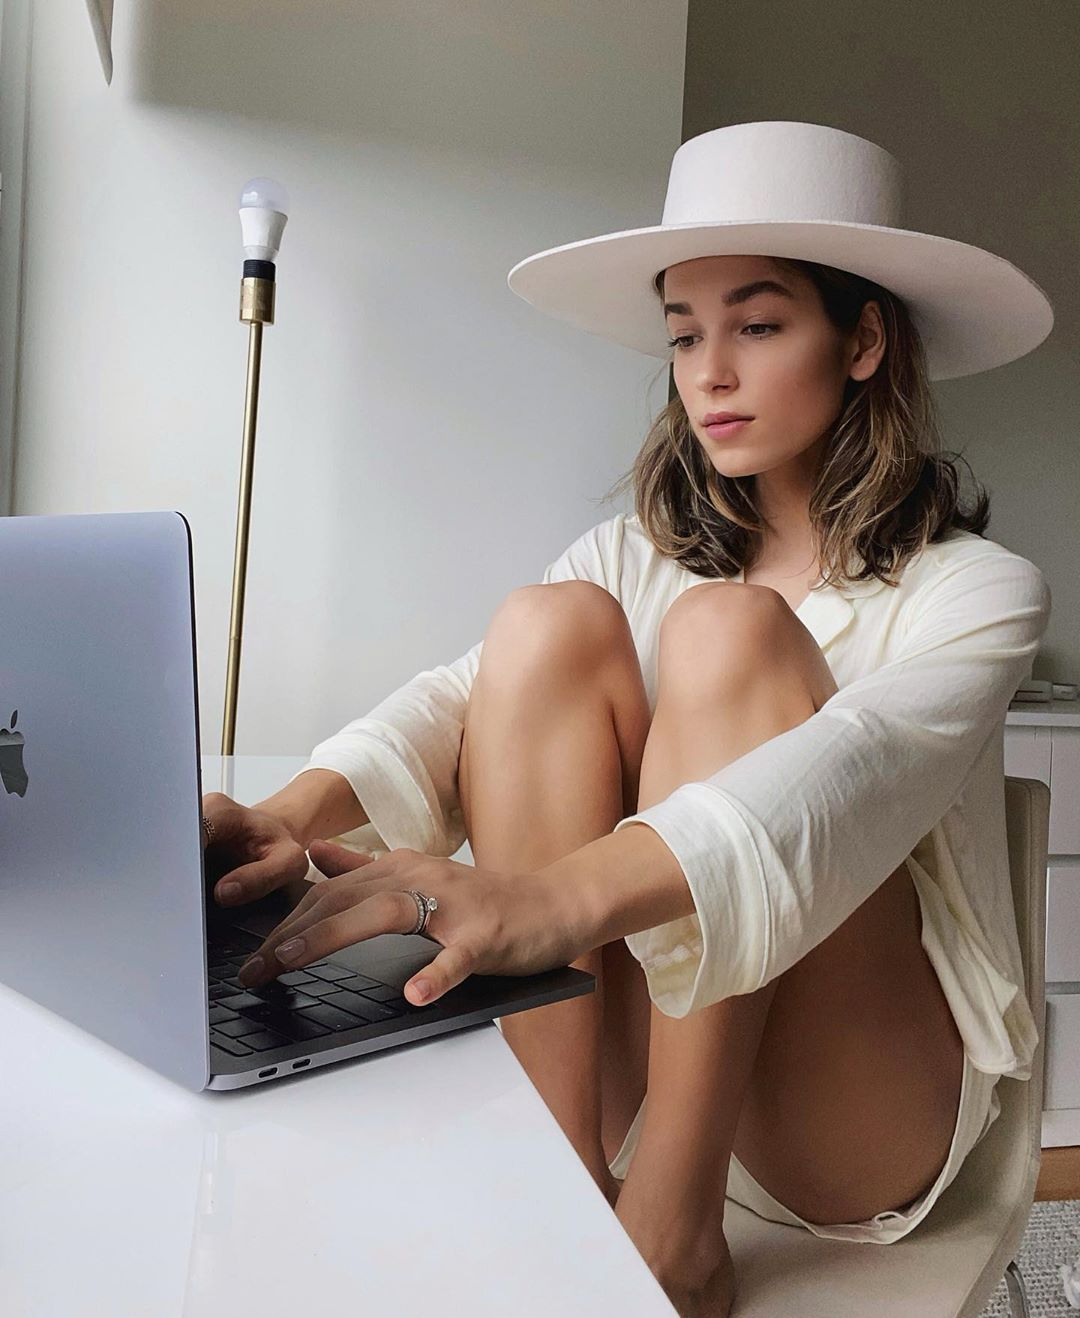 These Hats Are Must-Haves for Staying Stylish At Home